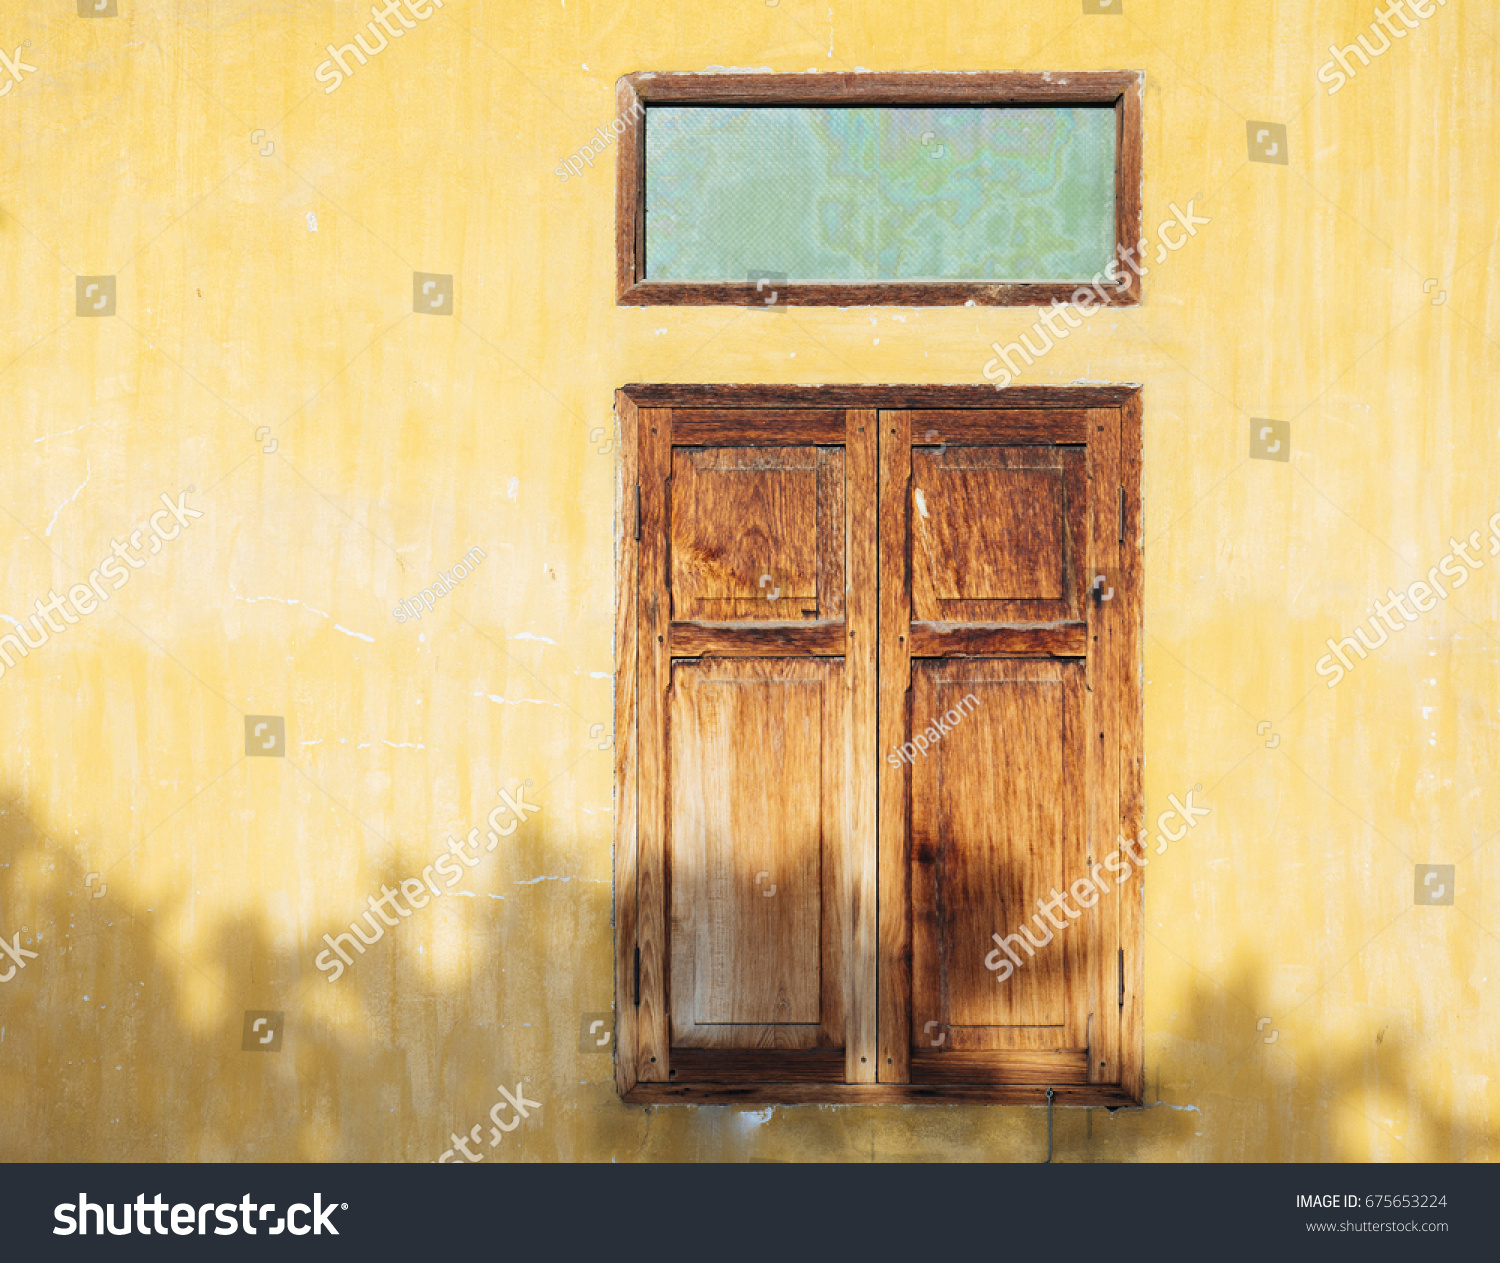 Old Vintage Yellow Wall Old Wood Stock Photo 675653224 - Shutterstock